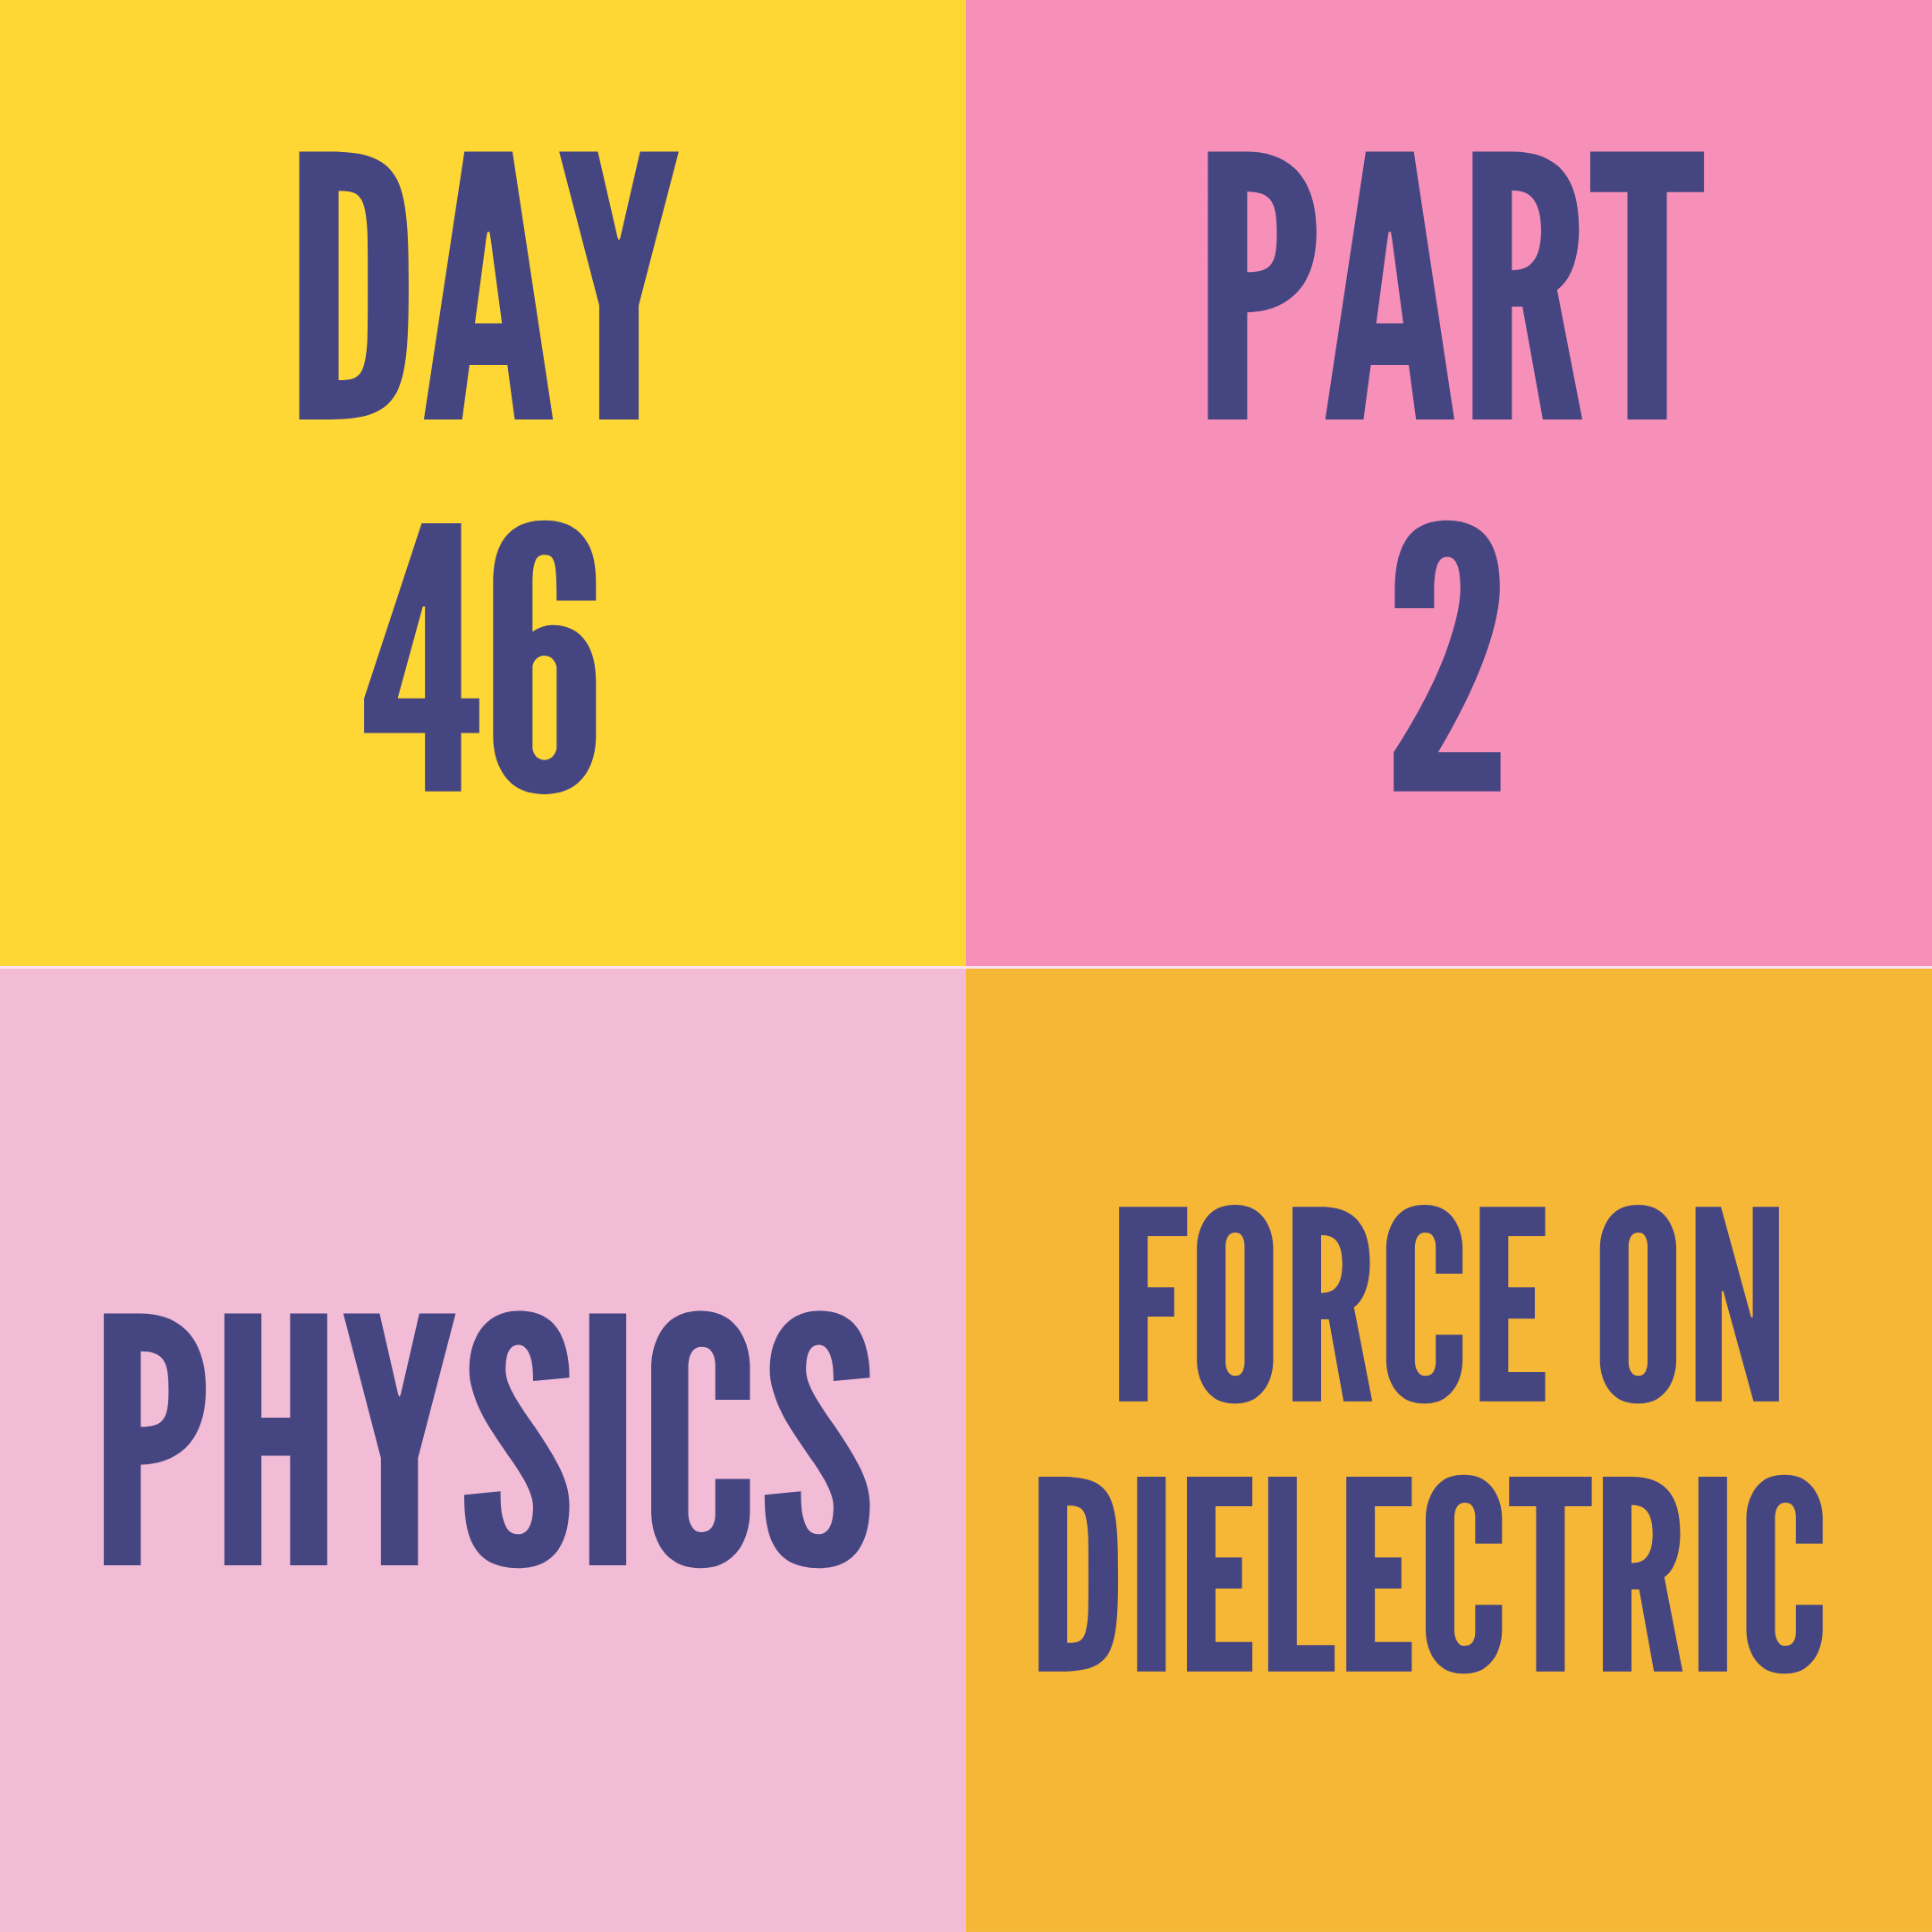 DAY-46 PART-2  FORCE ON DIELECTRIC